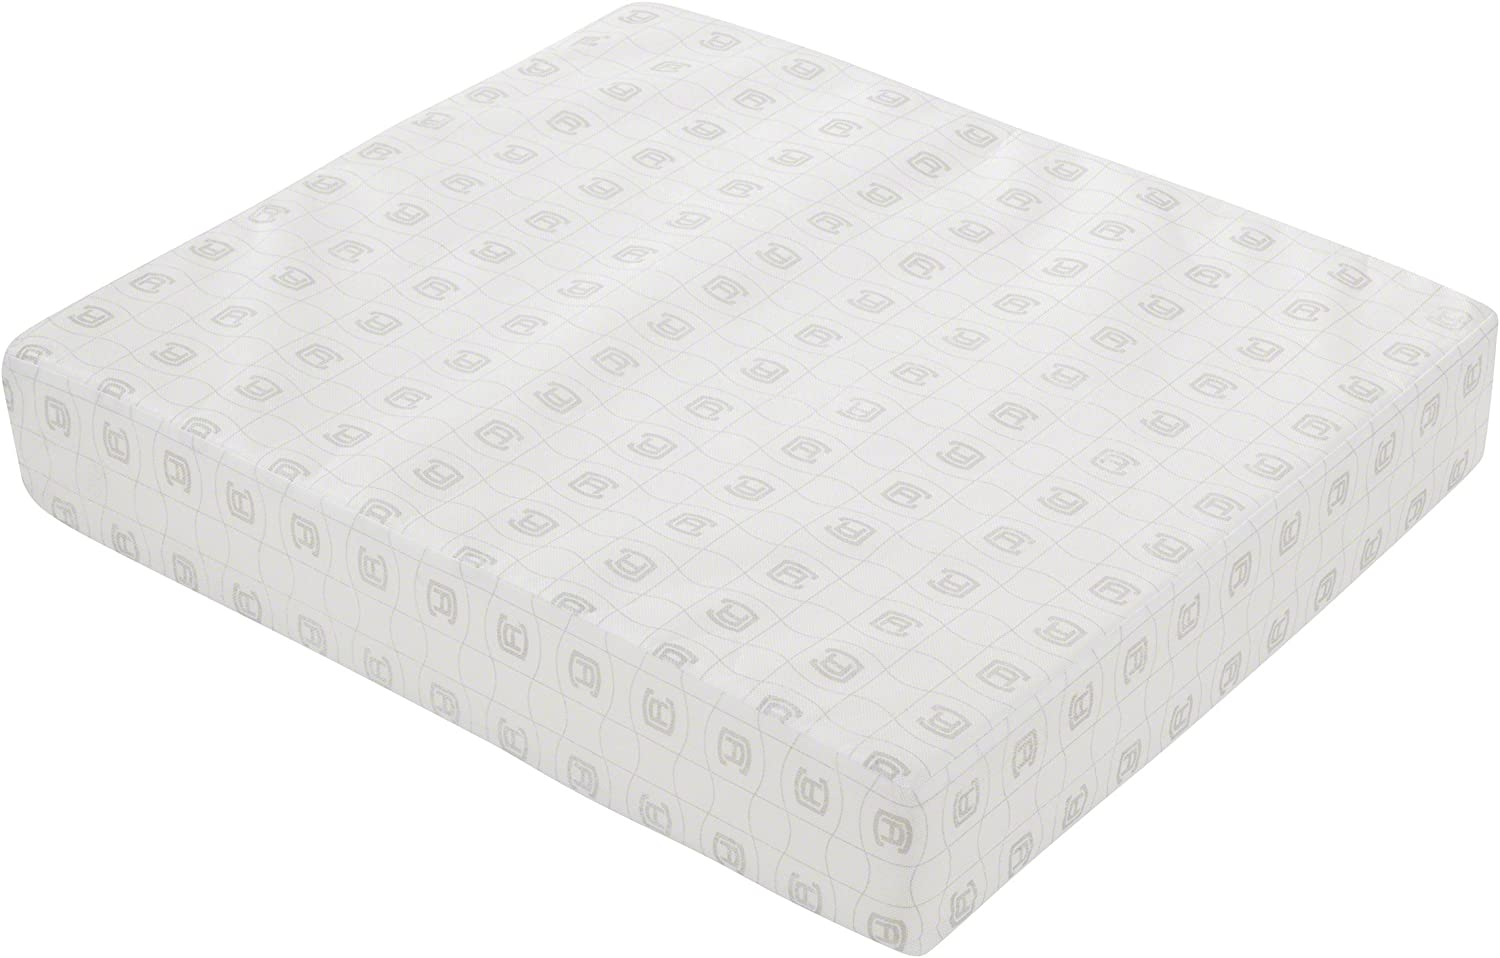 Classic Accessories 23 x 20 3 NEW before selling Patio F Cushion Inch Rectangular Max 87% OFF